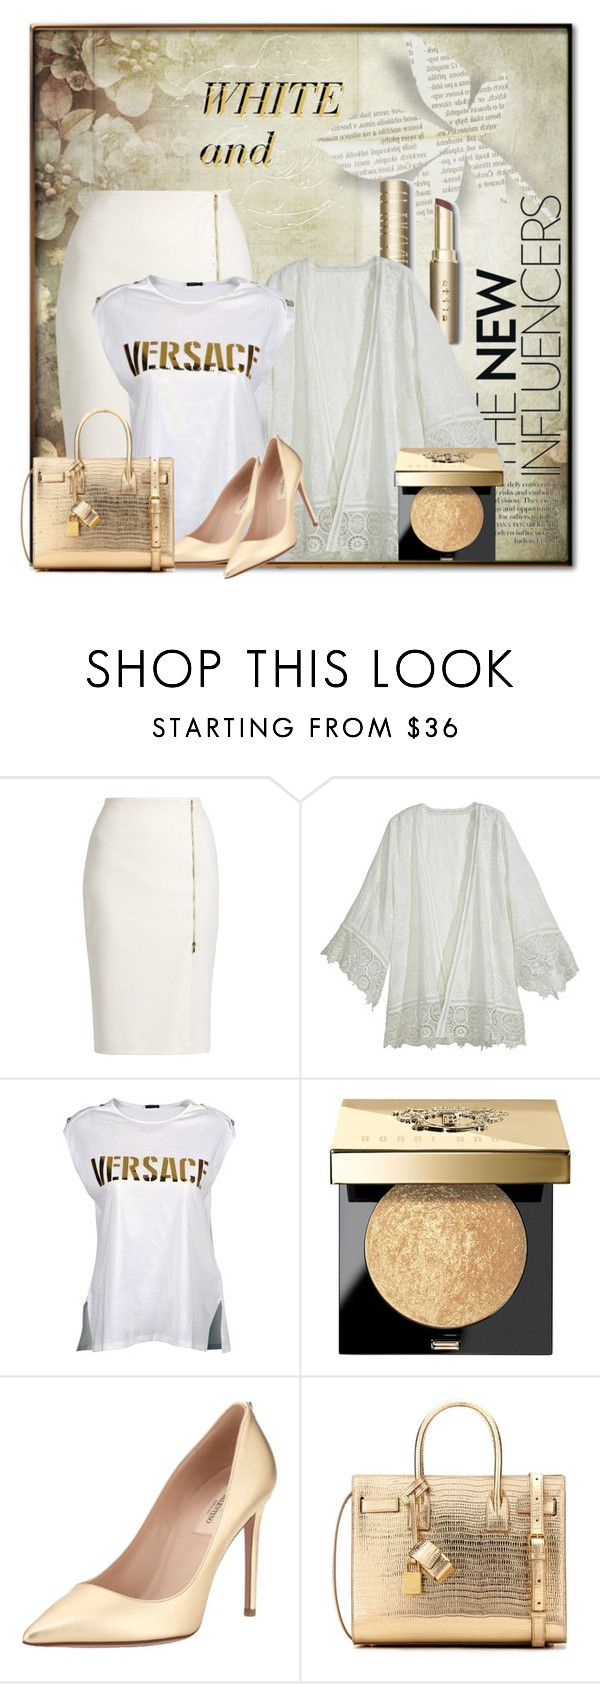 """WHITE and..."" by eco-art ❤ liked on Polyvore featuring MaxMara, Calypso St. Barth, Versace, Bobbi Brown Cosmetics, Valentino and Yves Saint Laurent"